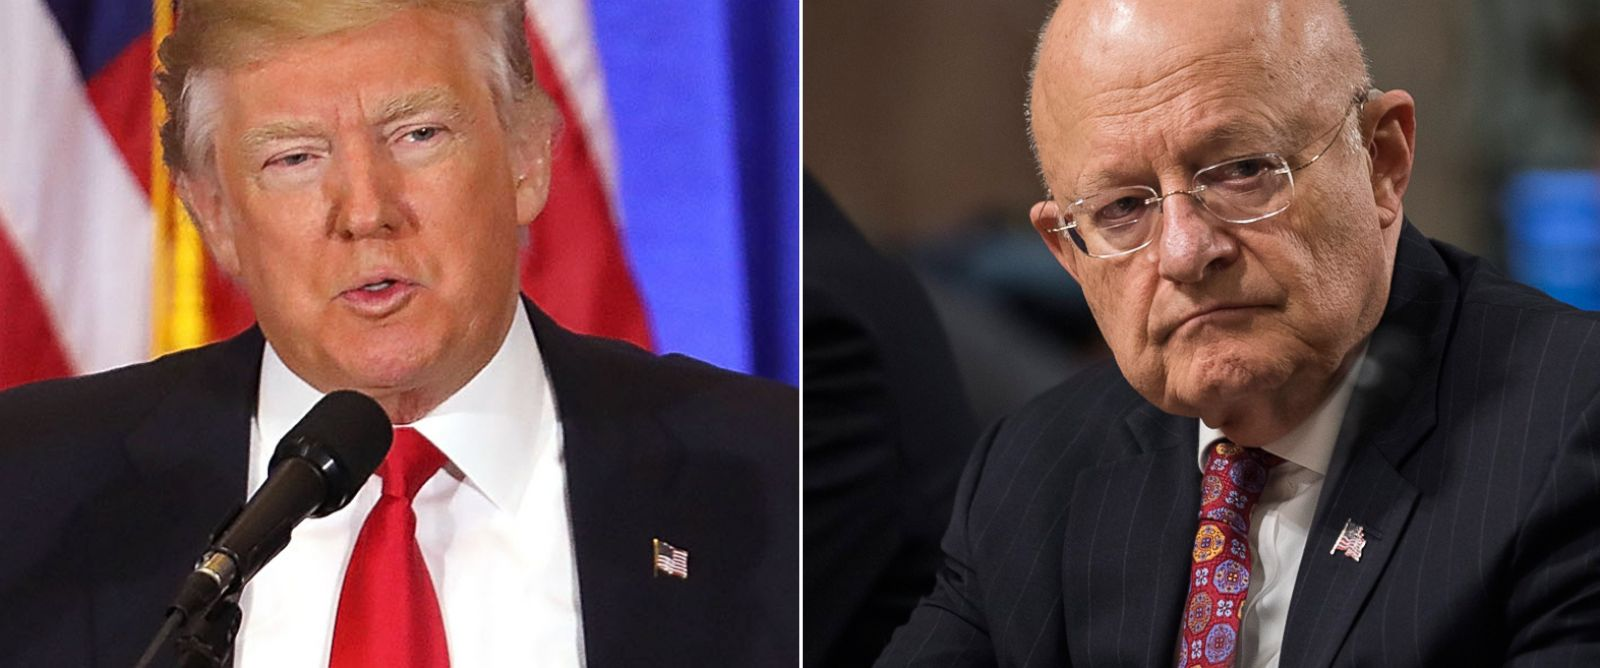 PHOTO: Pictured (L-R) are President-elect Donald Trump in New York City, Jan. 11, 2017 and Director of National Intelligence James Clapper Jr. in Washington, D.C., Jan. 5, 2017.